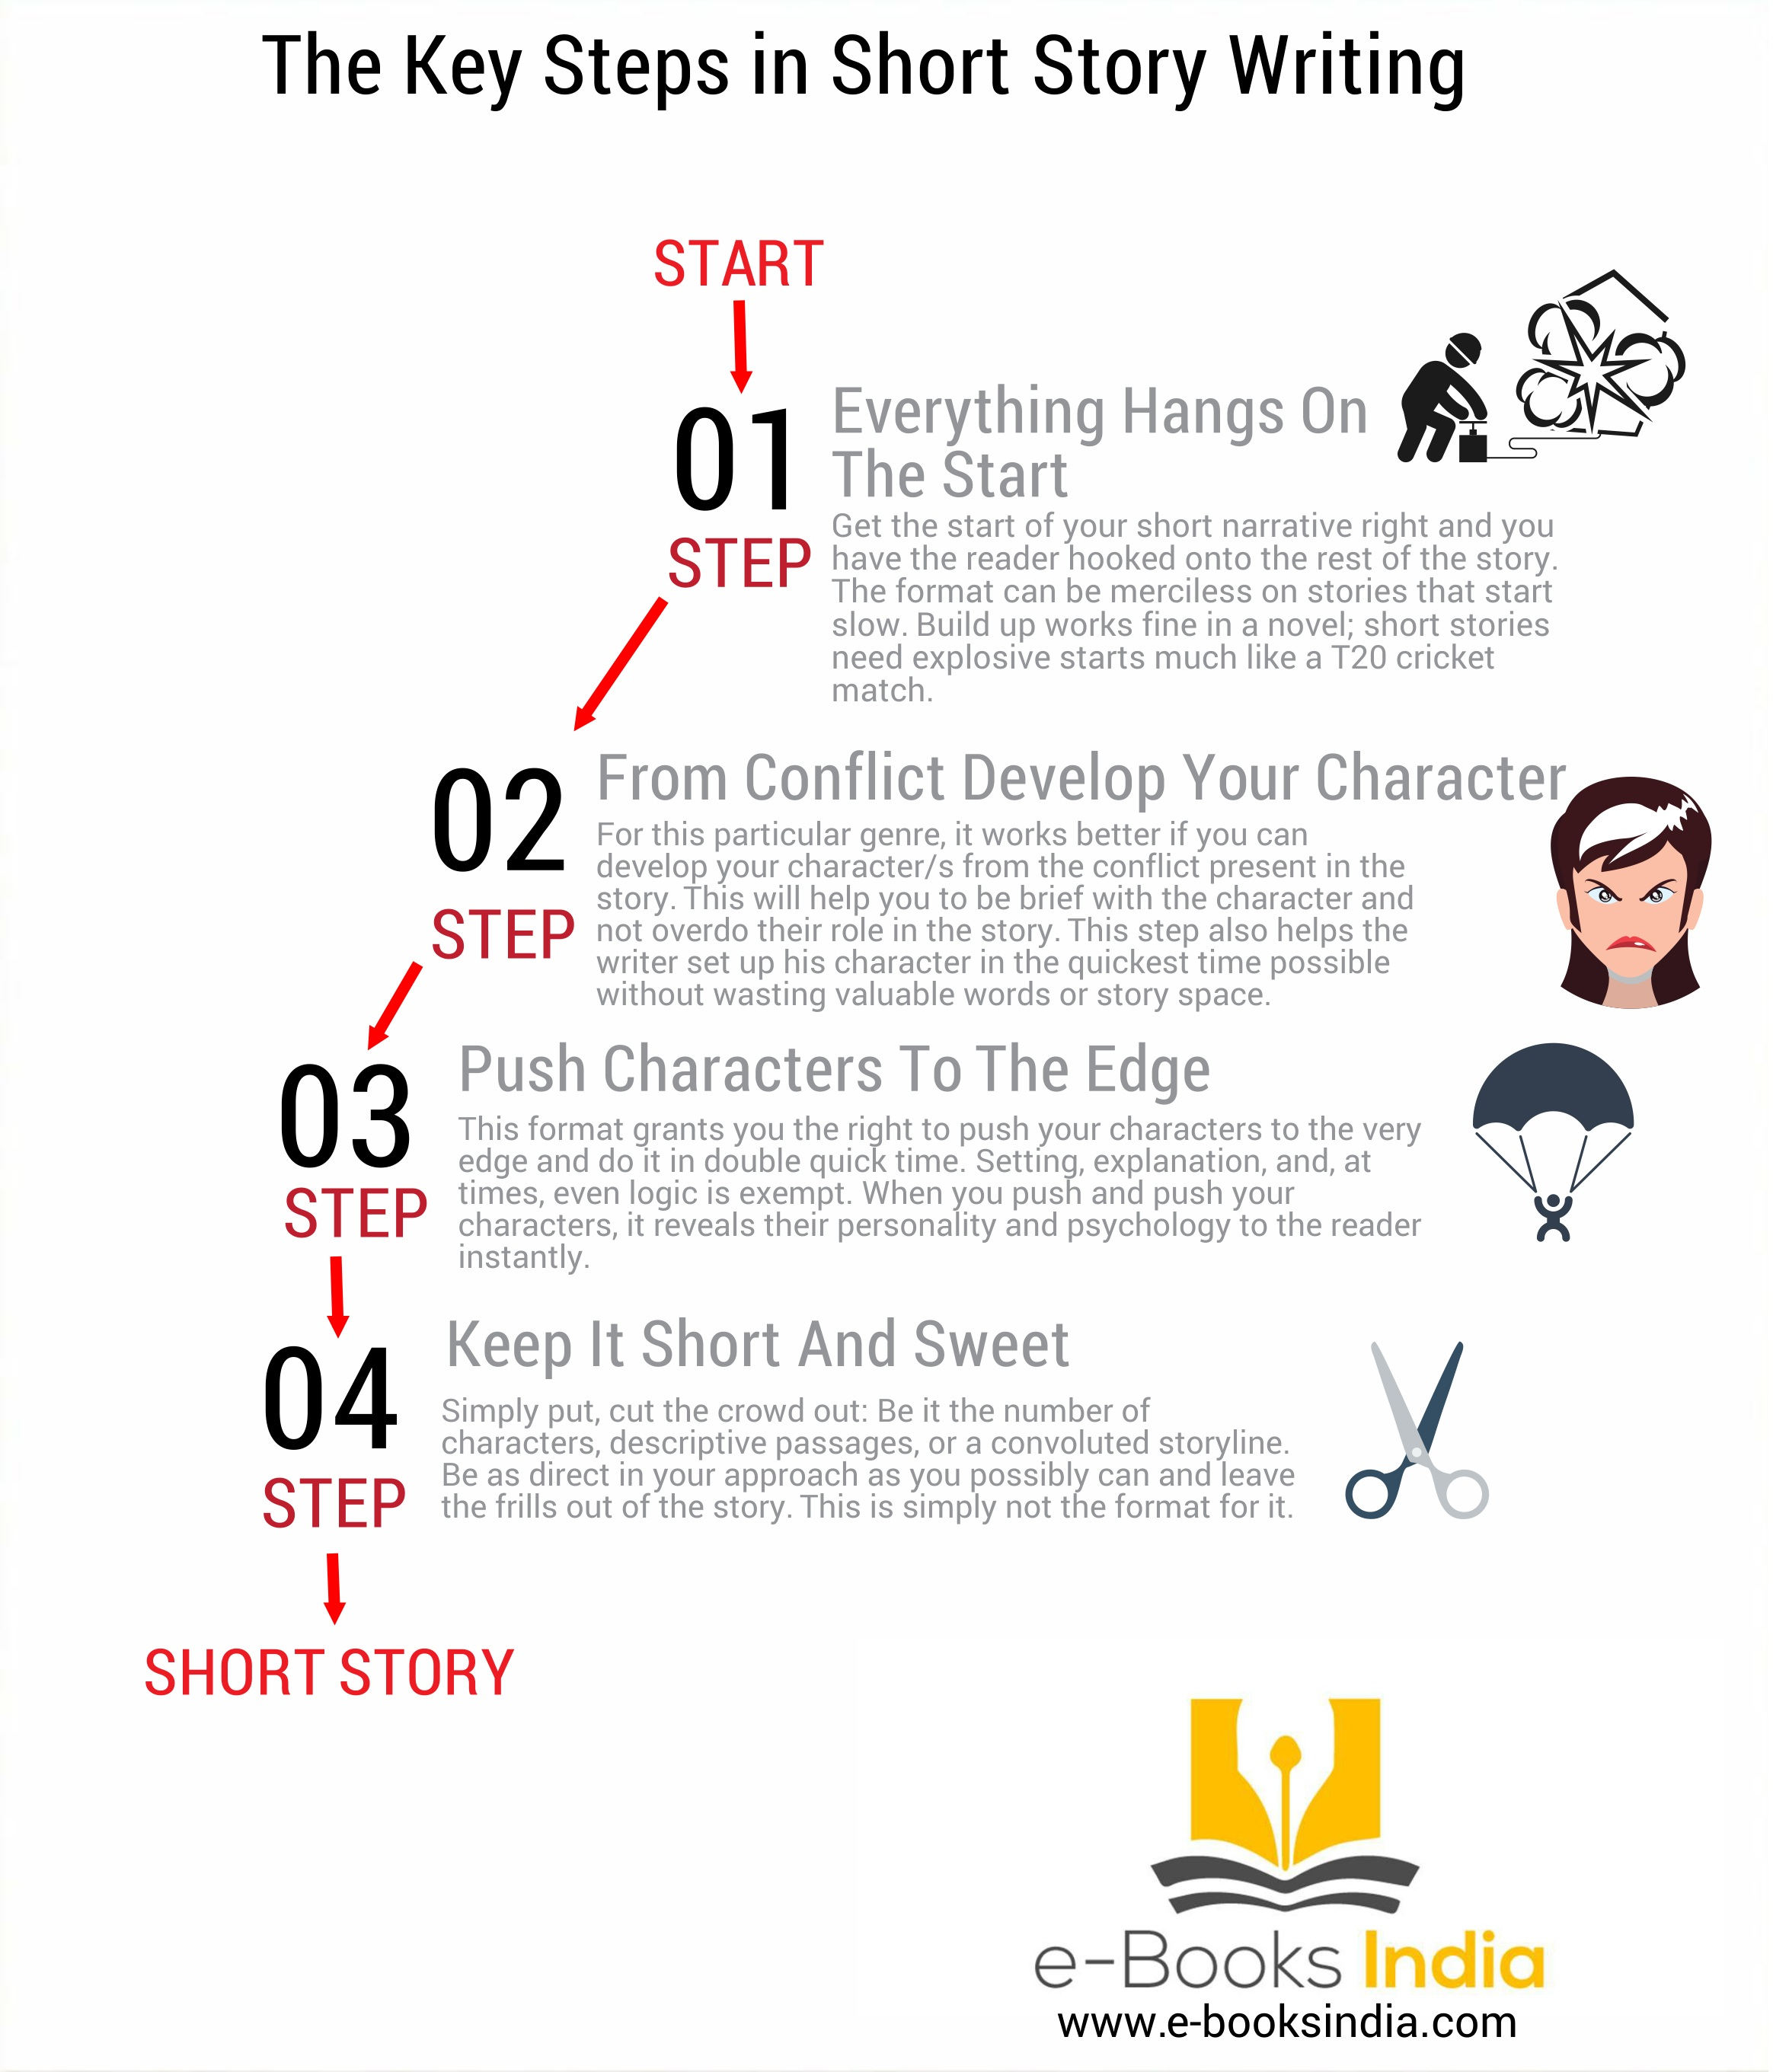 The Key Steps In Short Story Writing Infographic